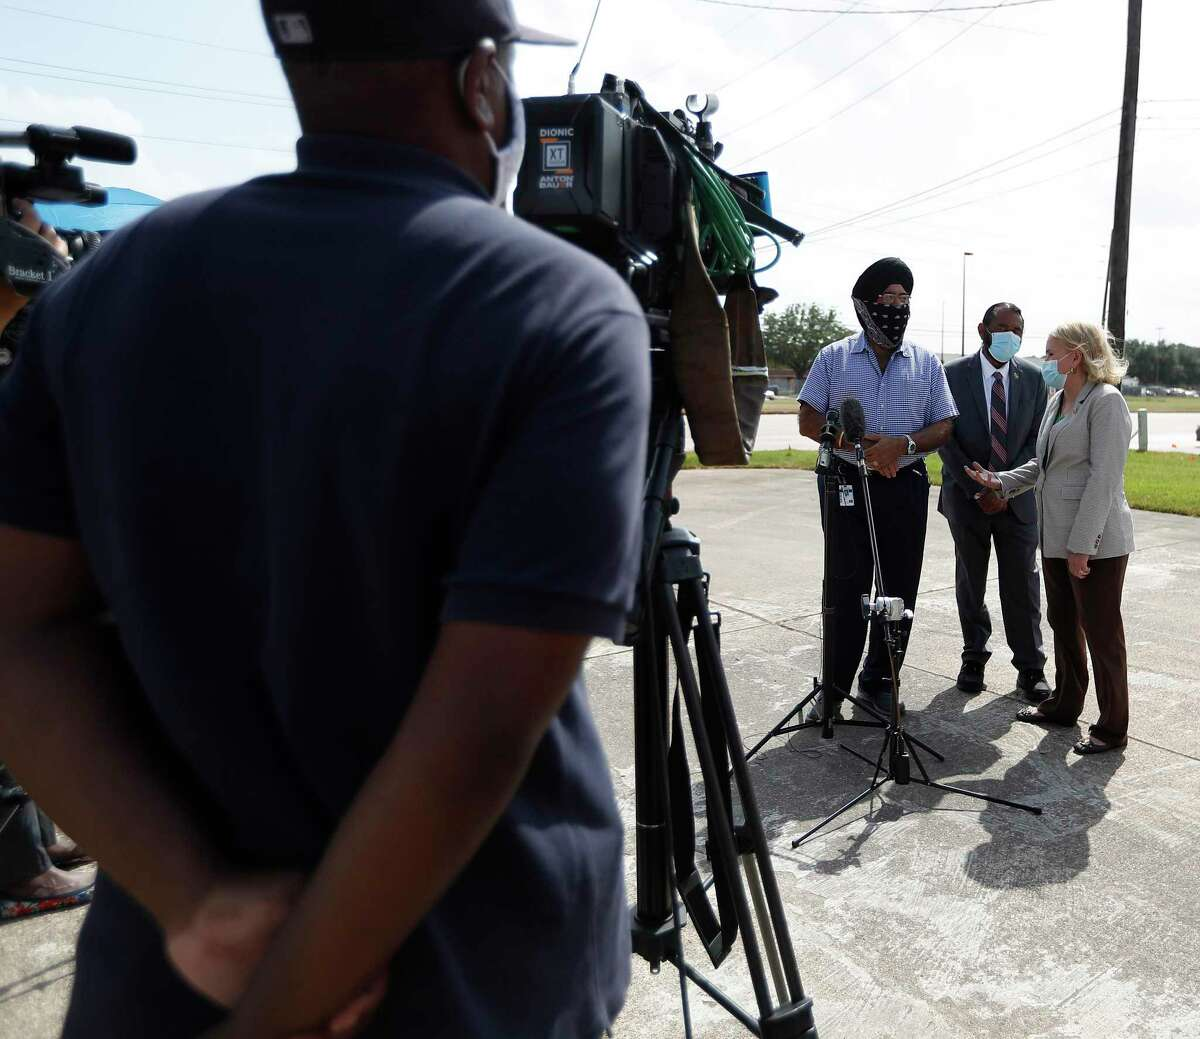 Congresswoman Sylvia Garcia and Congressman Al Green along with Prit Singh, speak to the media after their visit to the North Houston USPS Distribution and Processing (D&P) Center at 4600 Aldine Bender Road to conduct congressional oversight of the U.S. Postal Service, Tuesday, September 1, 2020, in Houston.